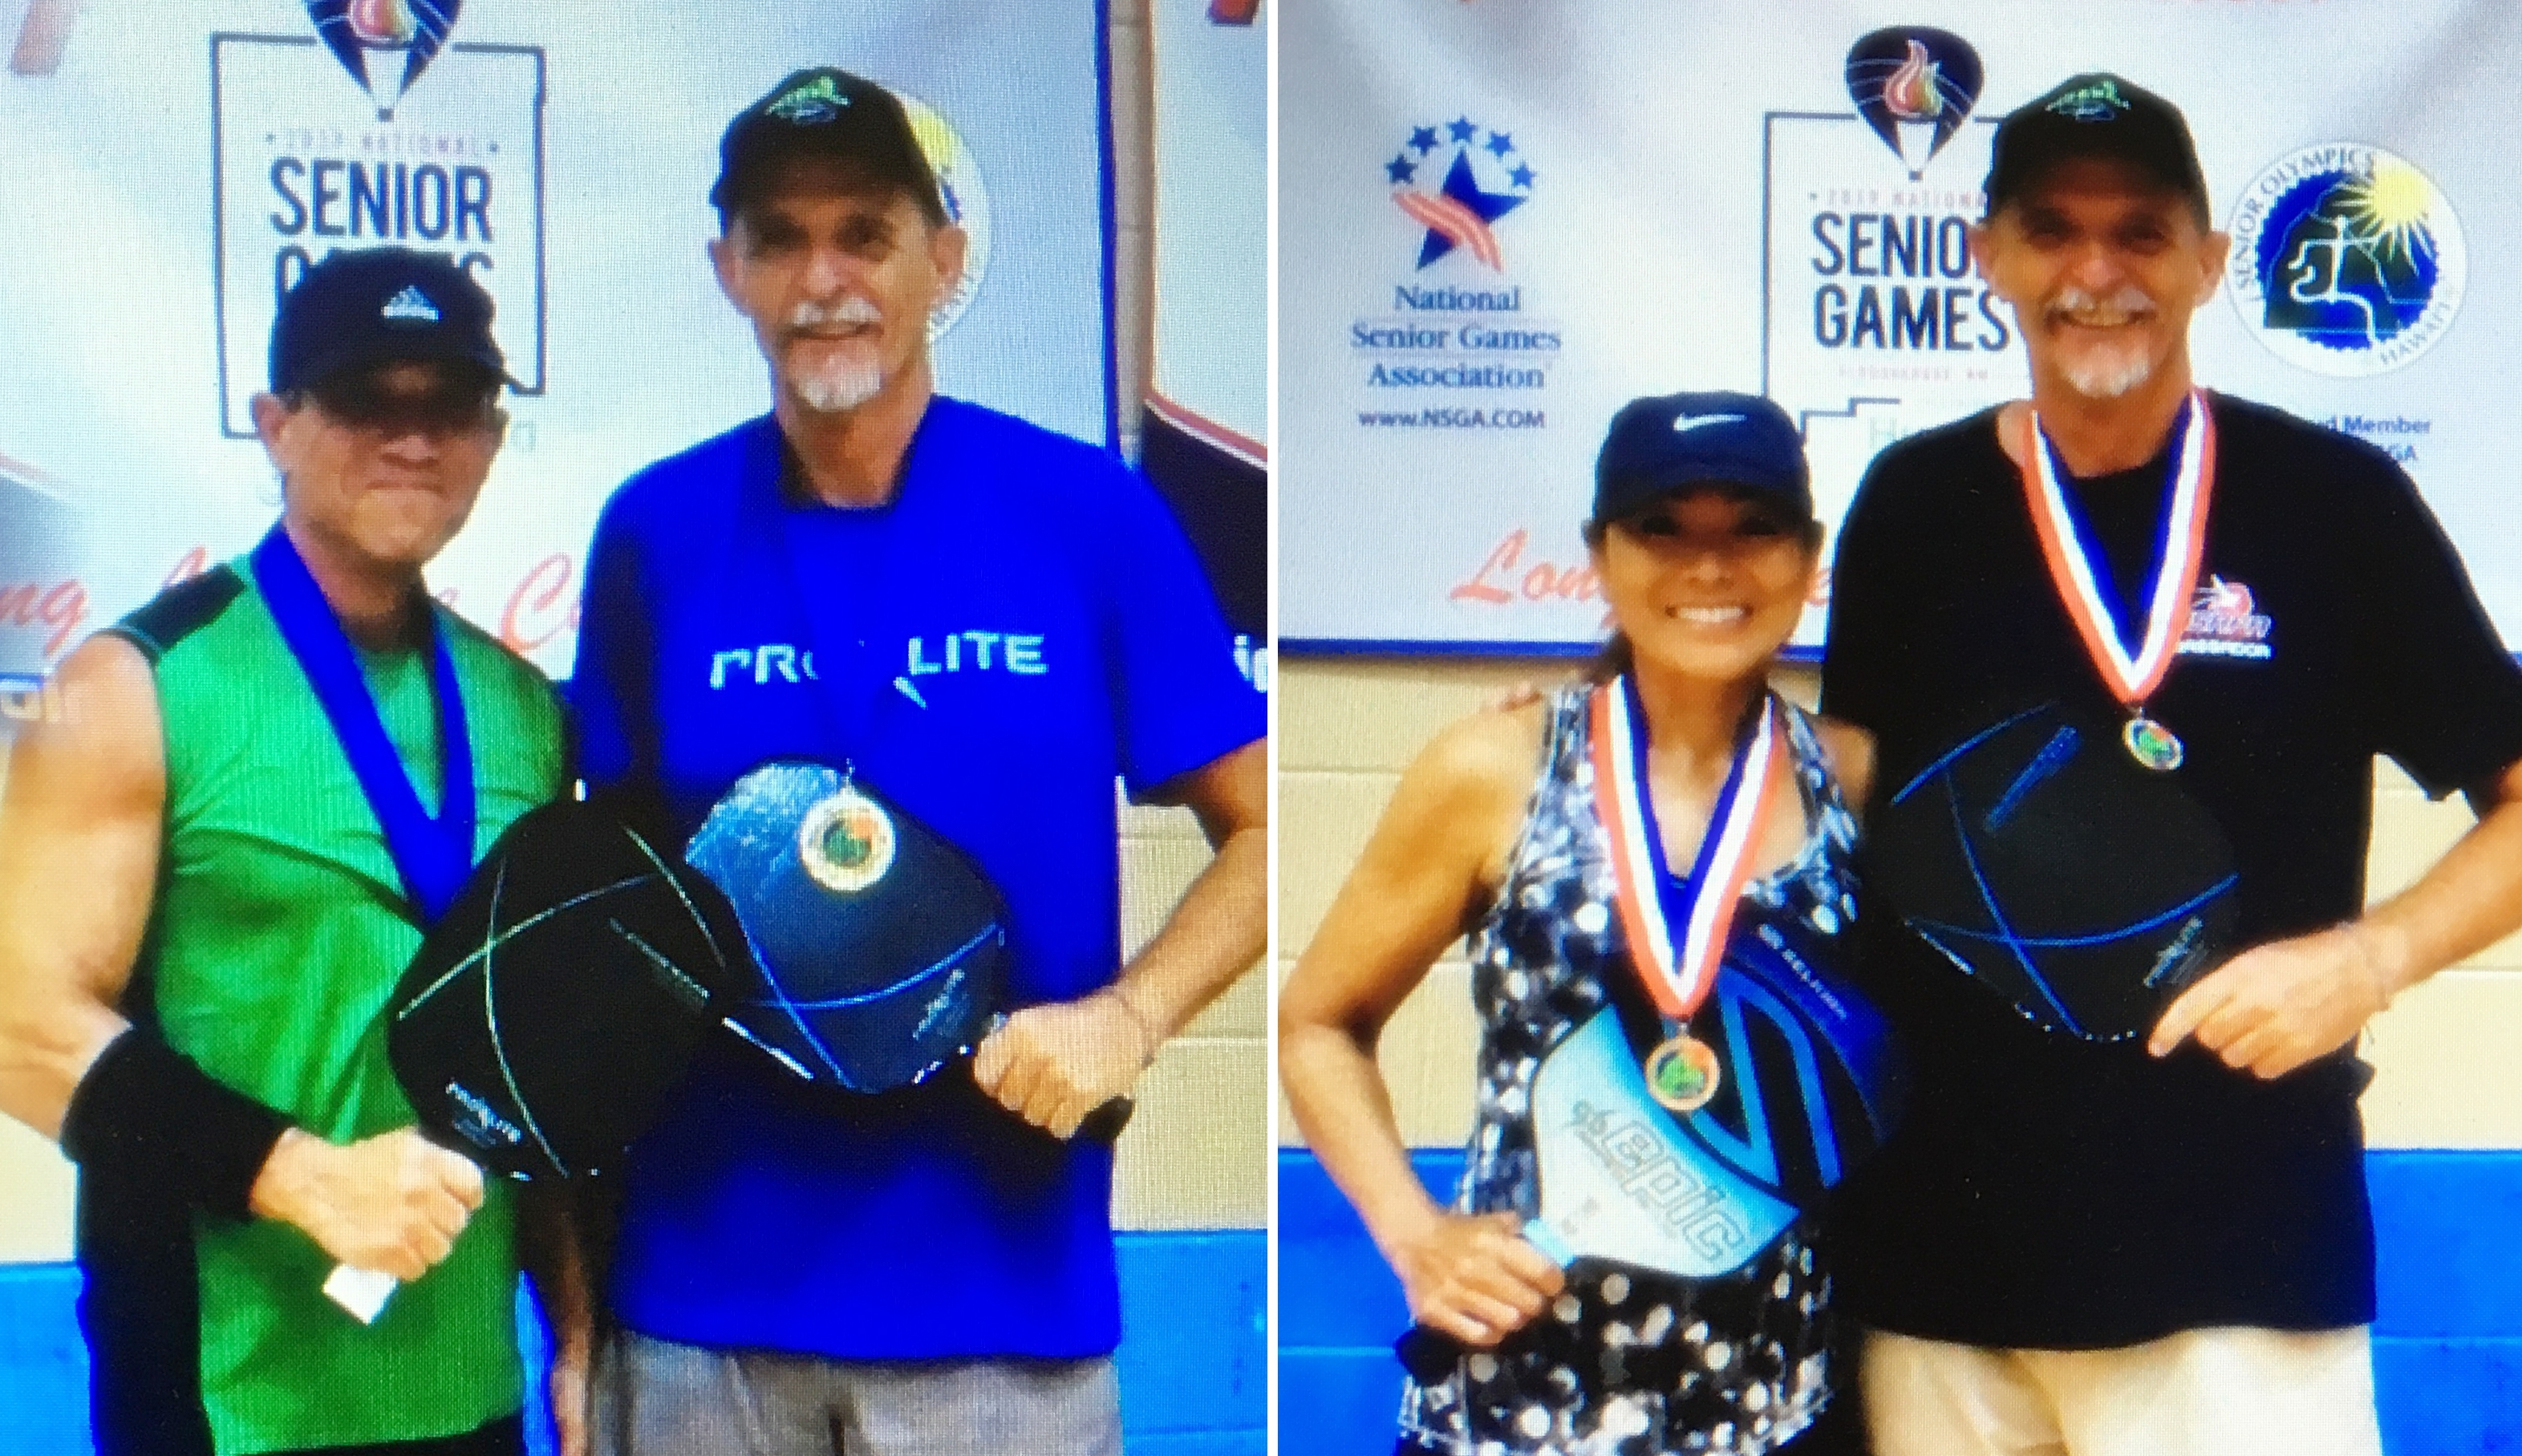 UPDATE: Maui Pickleball Players Advance to National Senior Games